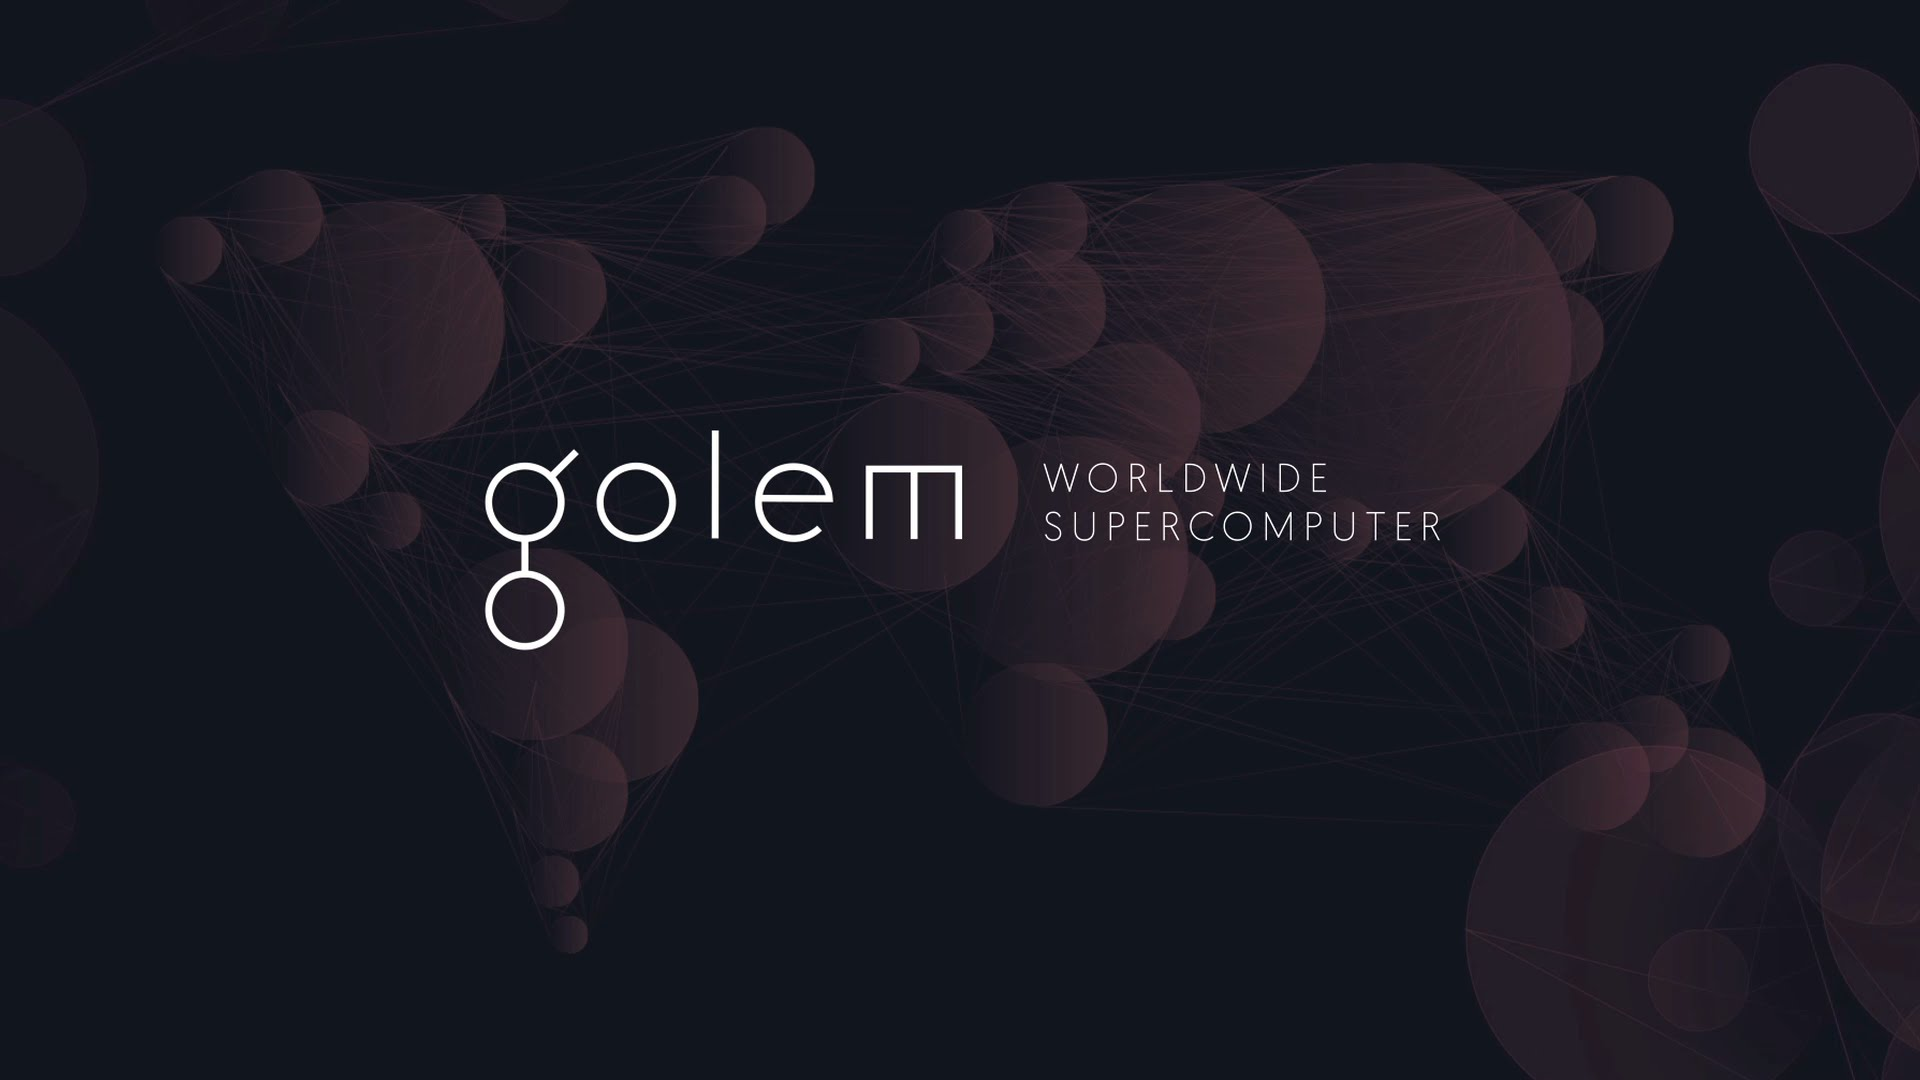 where can I buy golem in india? is golem a good product. what is a super computer